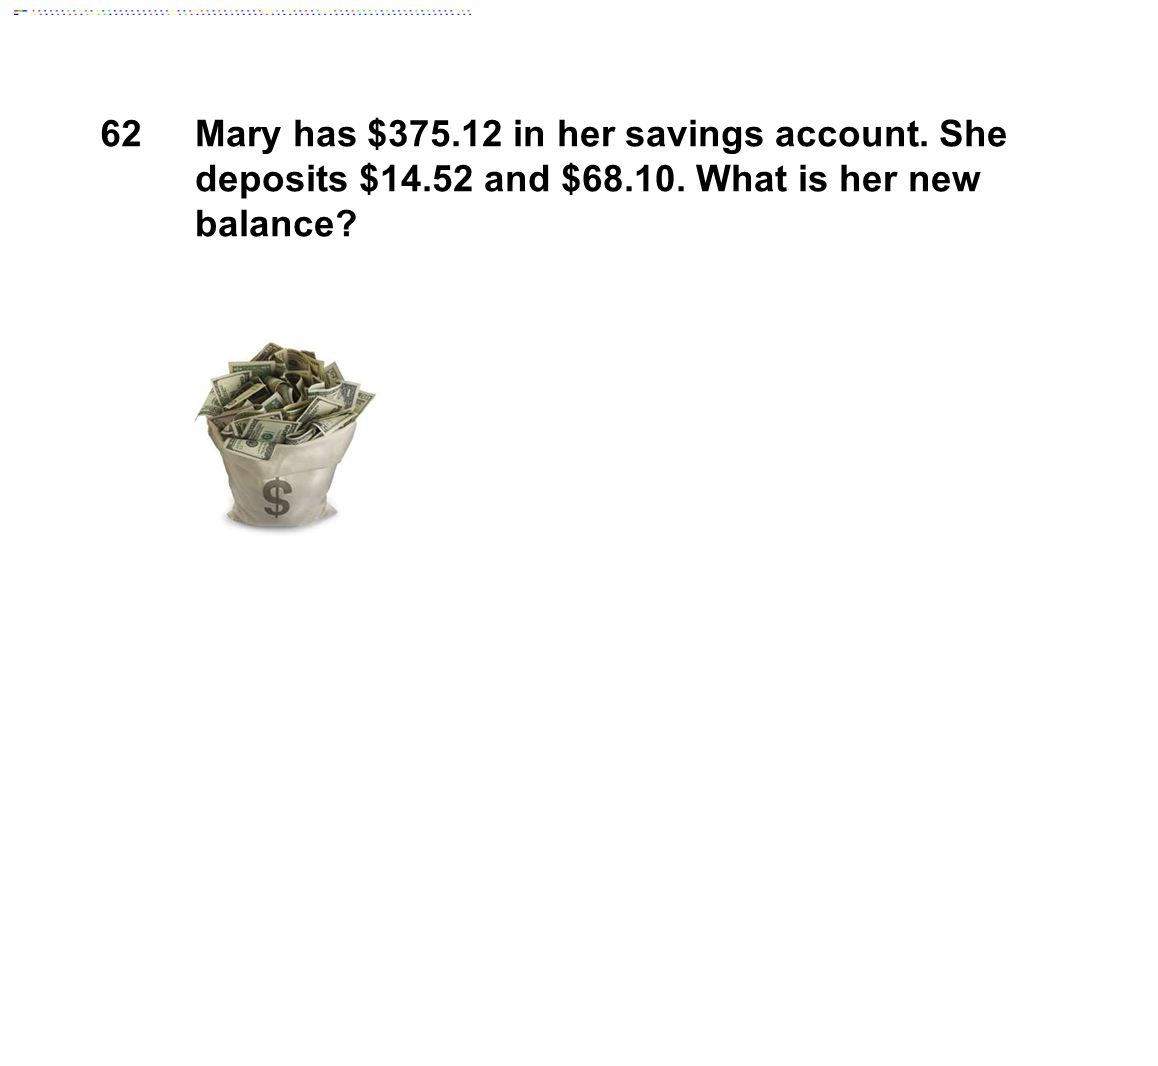 62Mary has $375.12 in her savings account. She deposits $14.52 and $68.10. What is her new balance